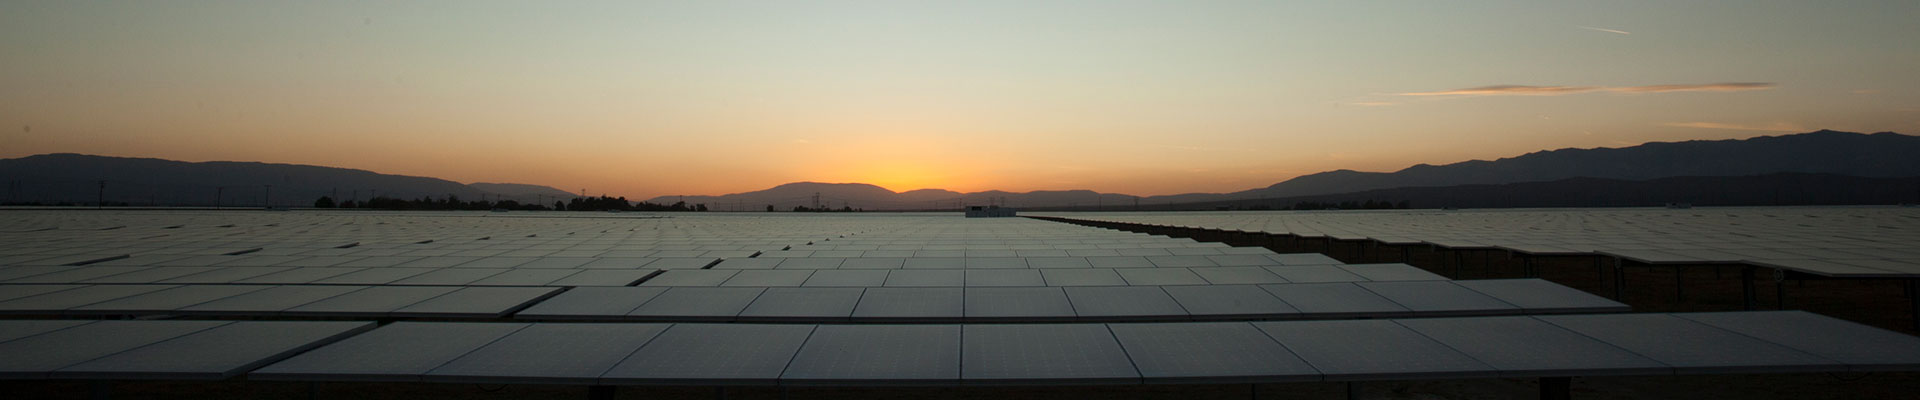 Solar_Energy_Panels_Evening